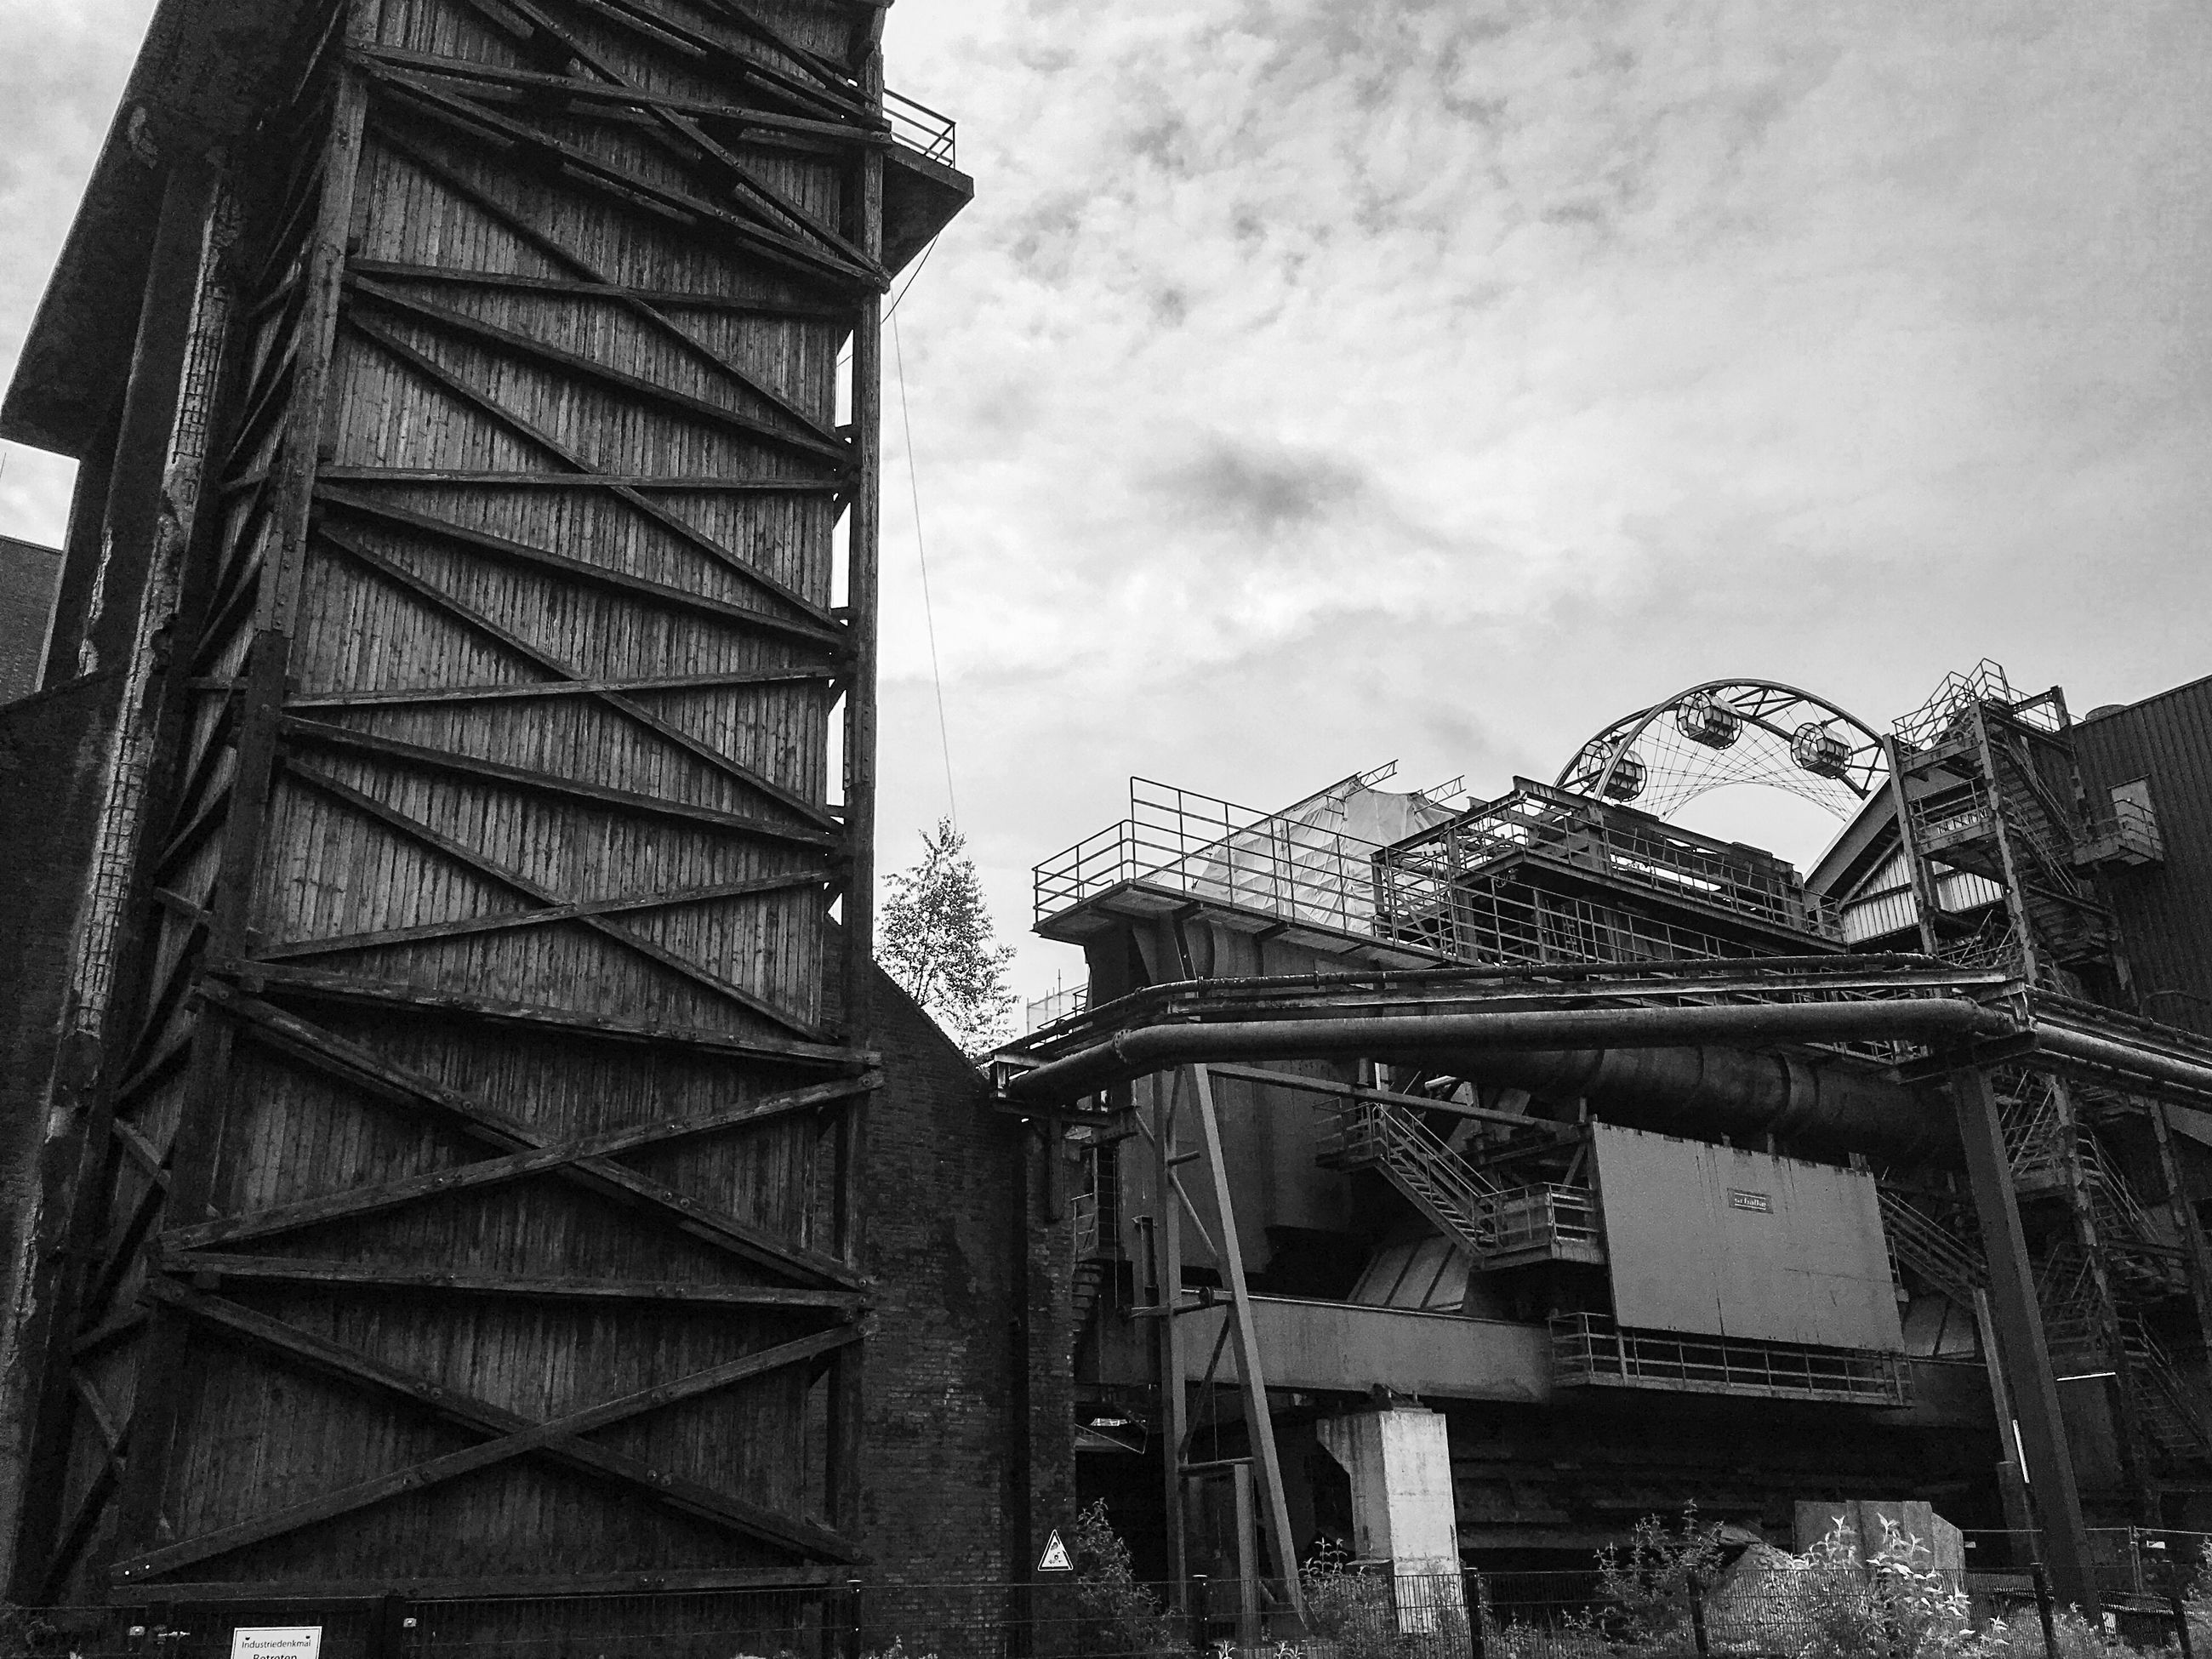 architecture, built structure, low angle view, building exterior, sky, metal, cloud - sky, building, old, day, cloud, abandoned, outdoors, no people, metallic, residential structure, cloudy, factory, connection, residential building